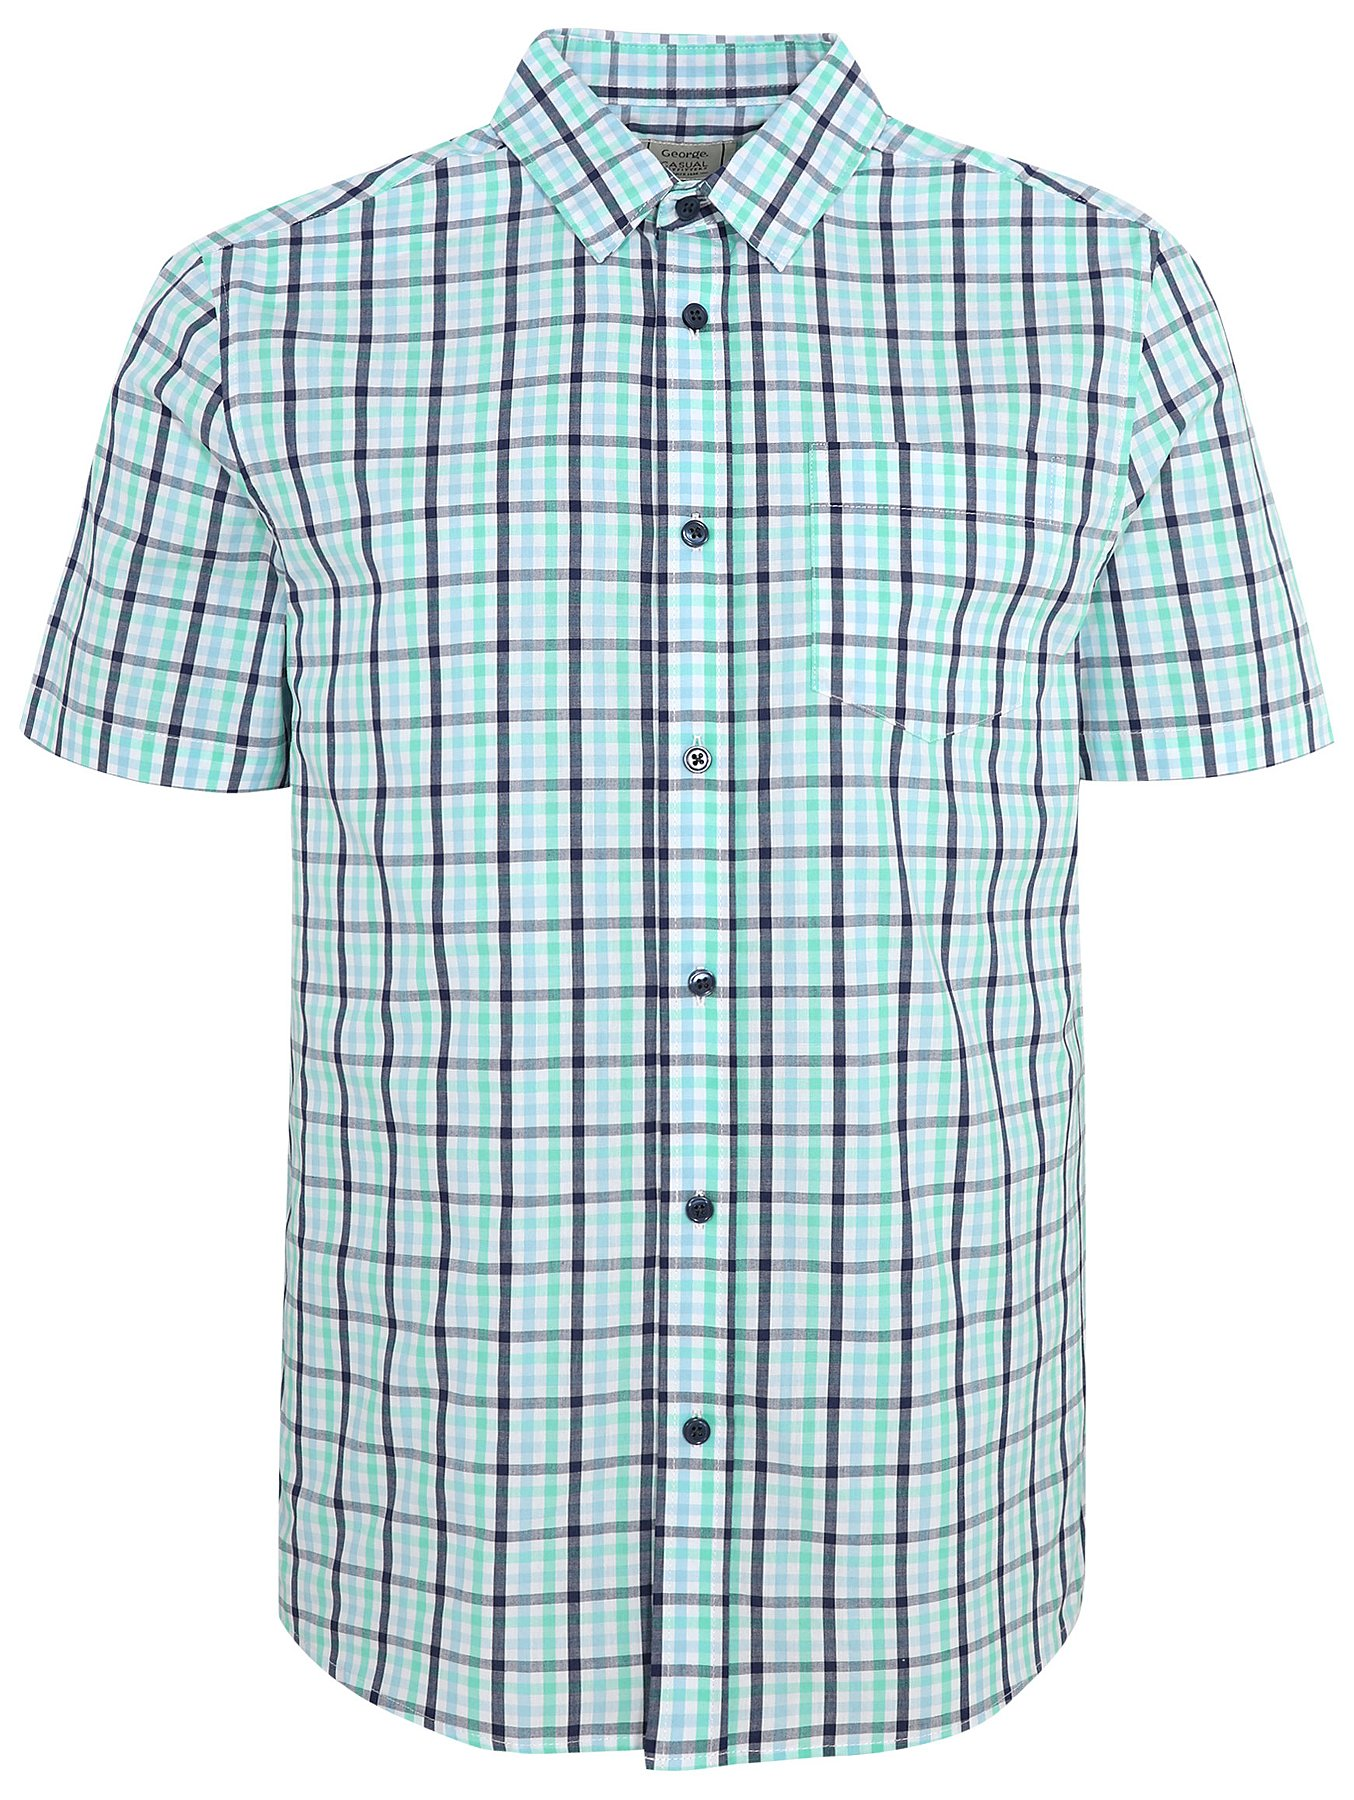 top quality affordable price top brands Asda George Mens Short Sleeve Shirts | Coolmine Community School